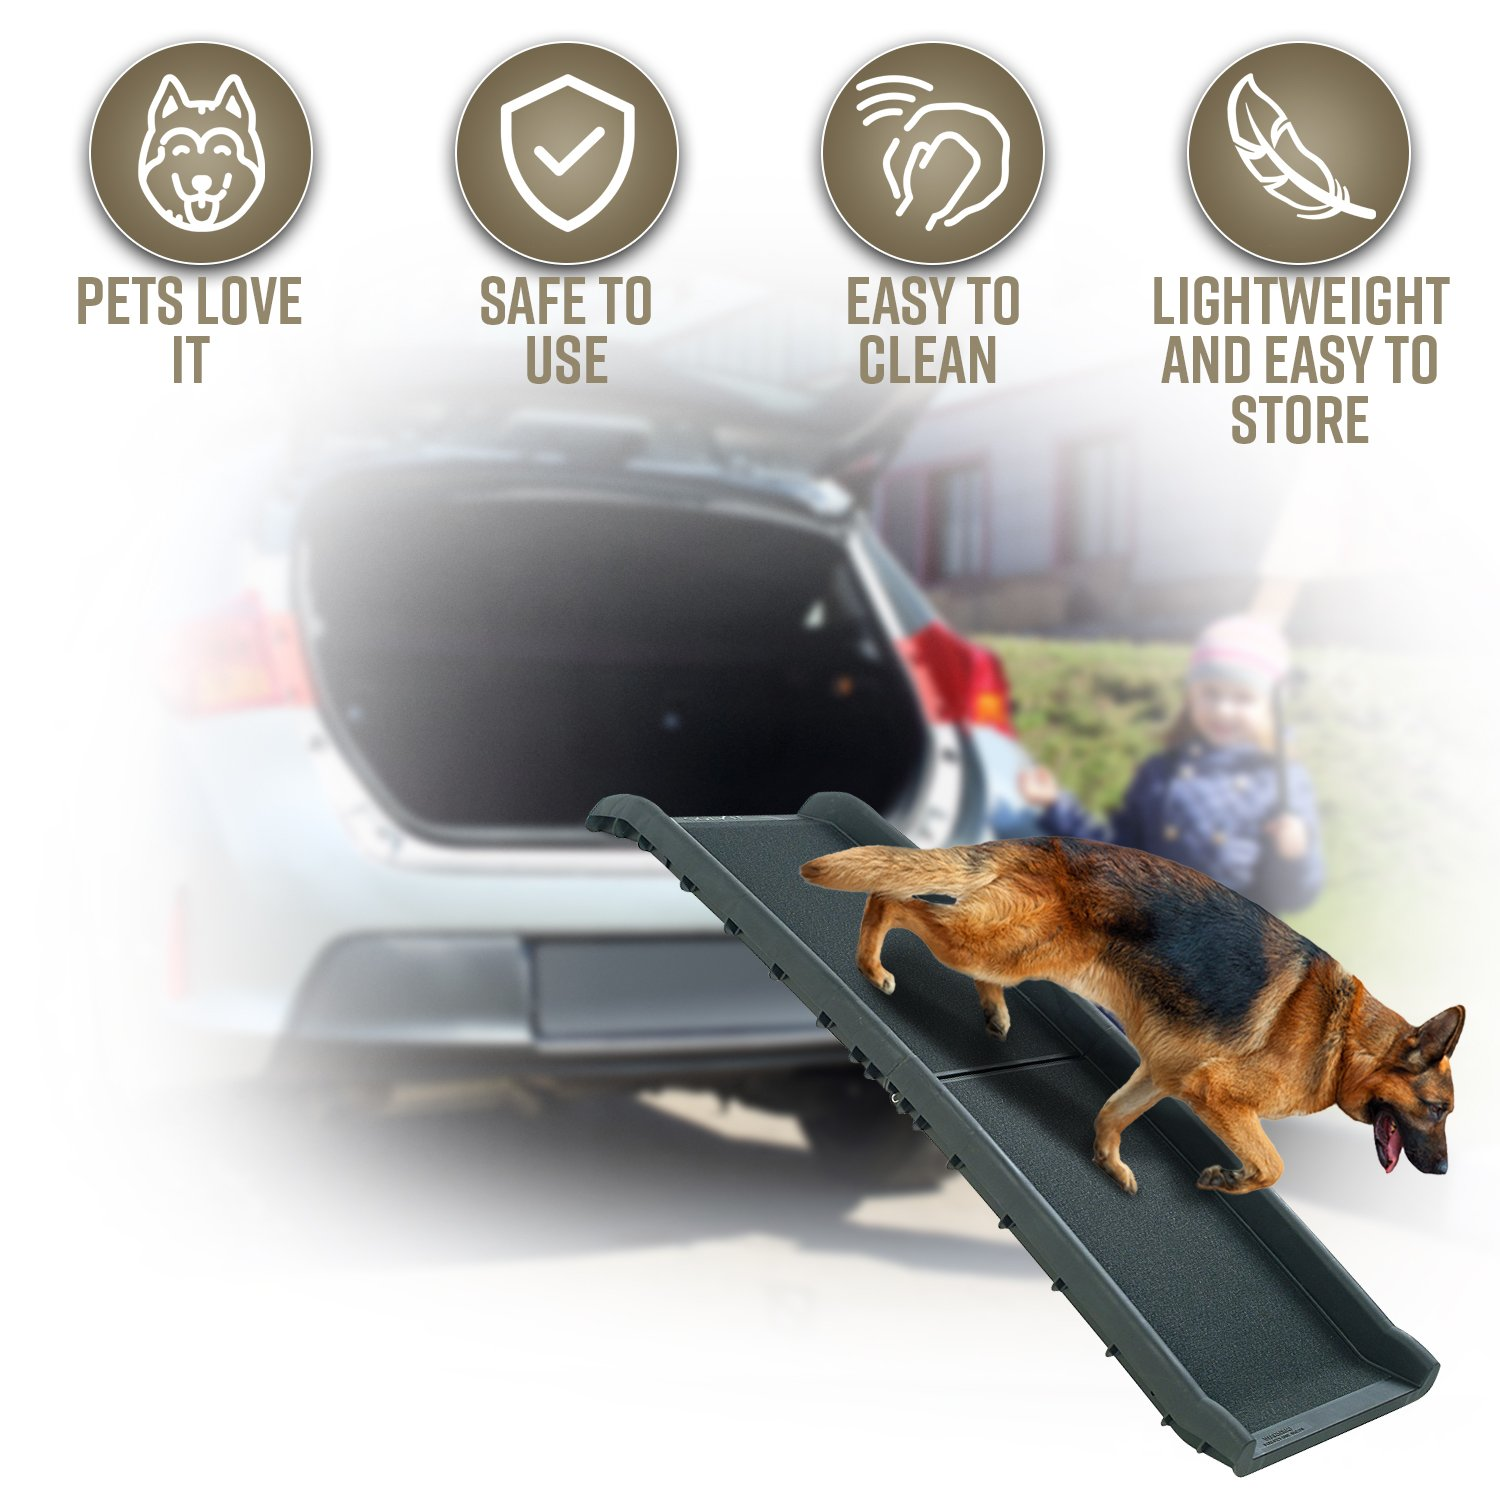 Perfect Life Ideas Pet Ramp for Car SUV Truck Boat - Folding Portable Dog Ramps for Large Medium Small Dogs, Outdoor Indoor Use for High Beds by Old Injured Pets Dogs Cats Better than Stairs Steps